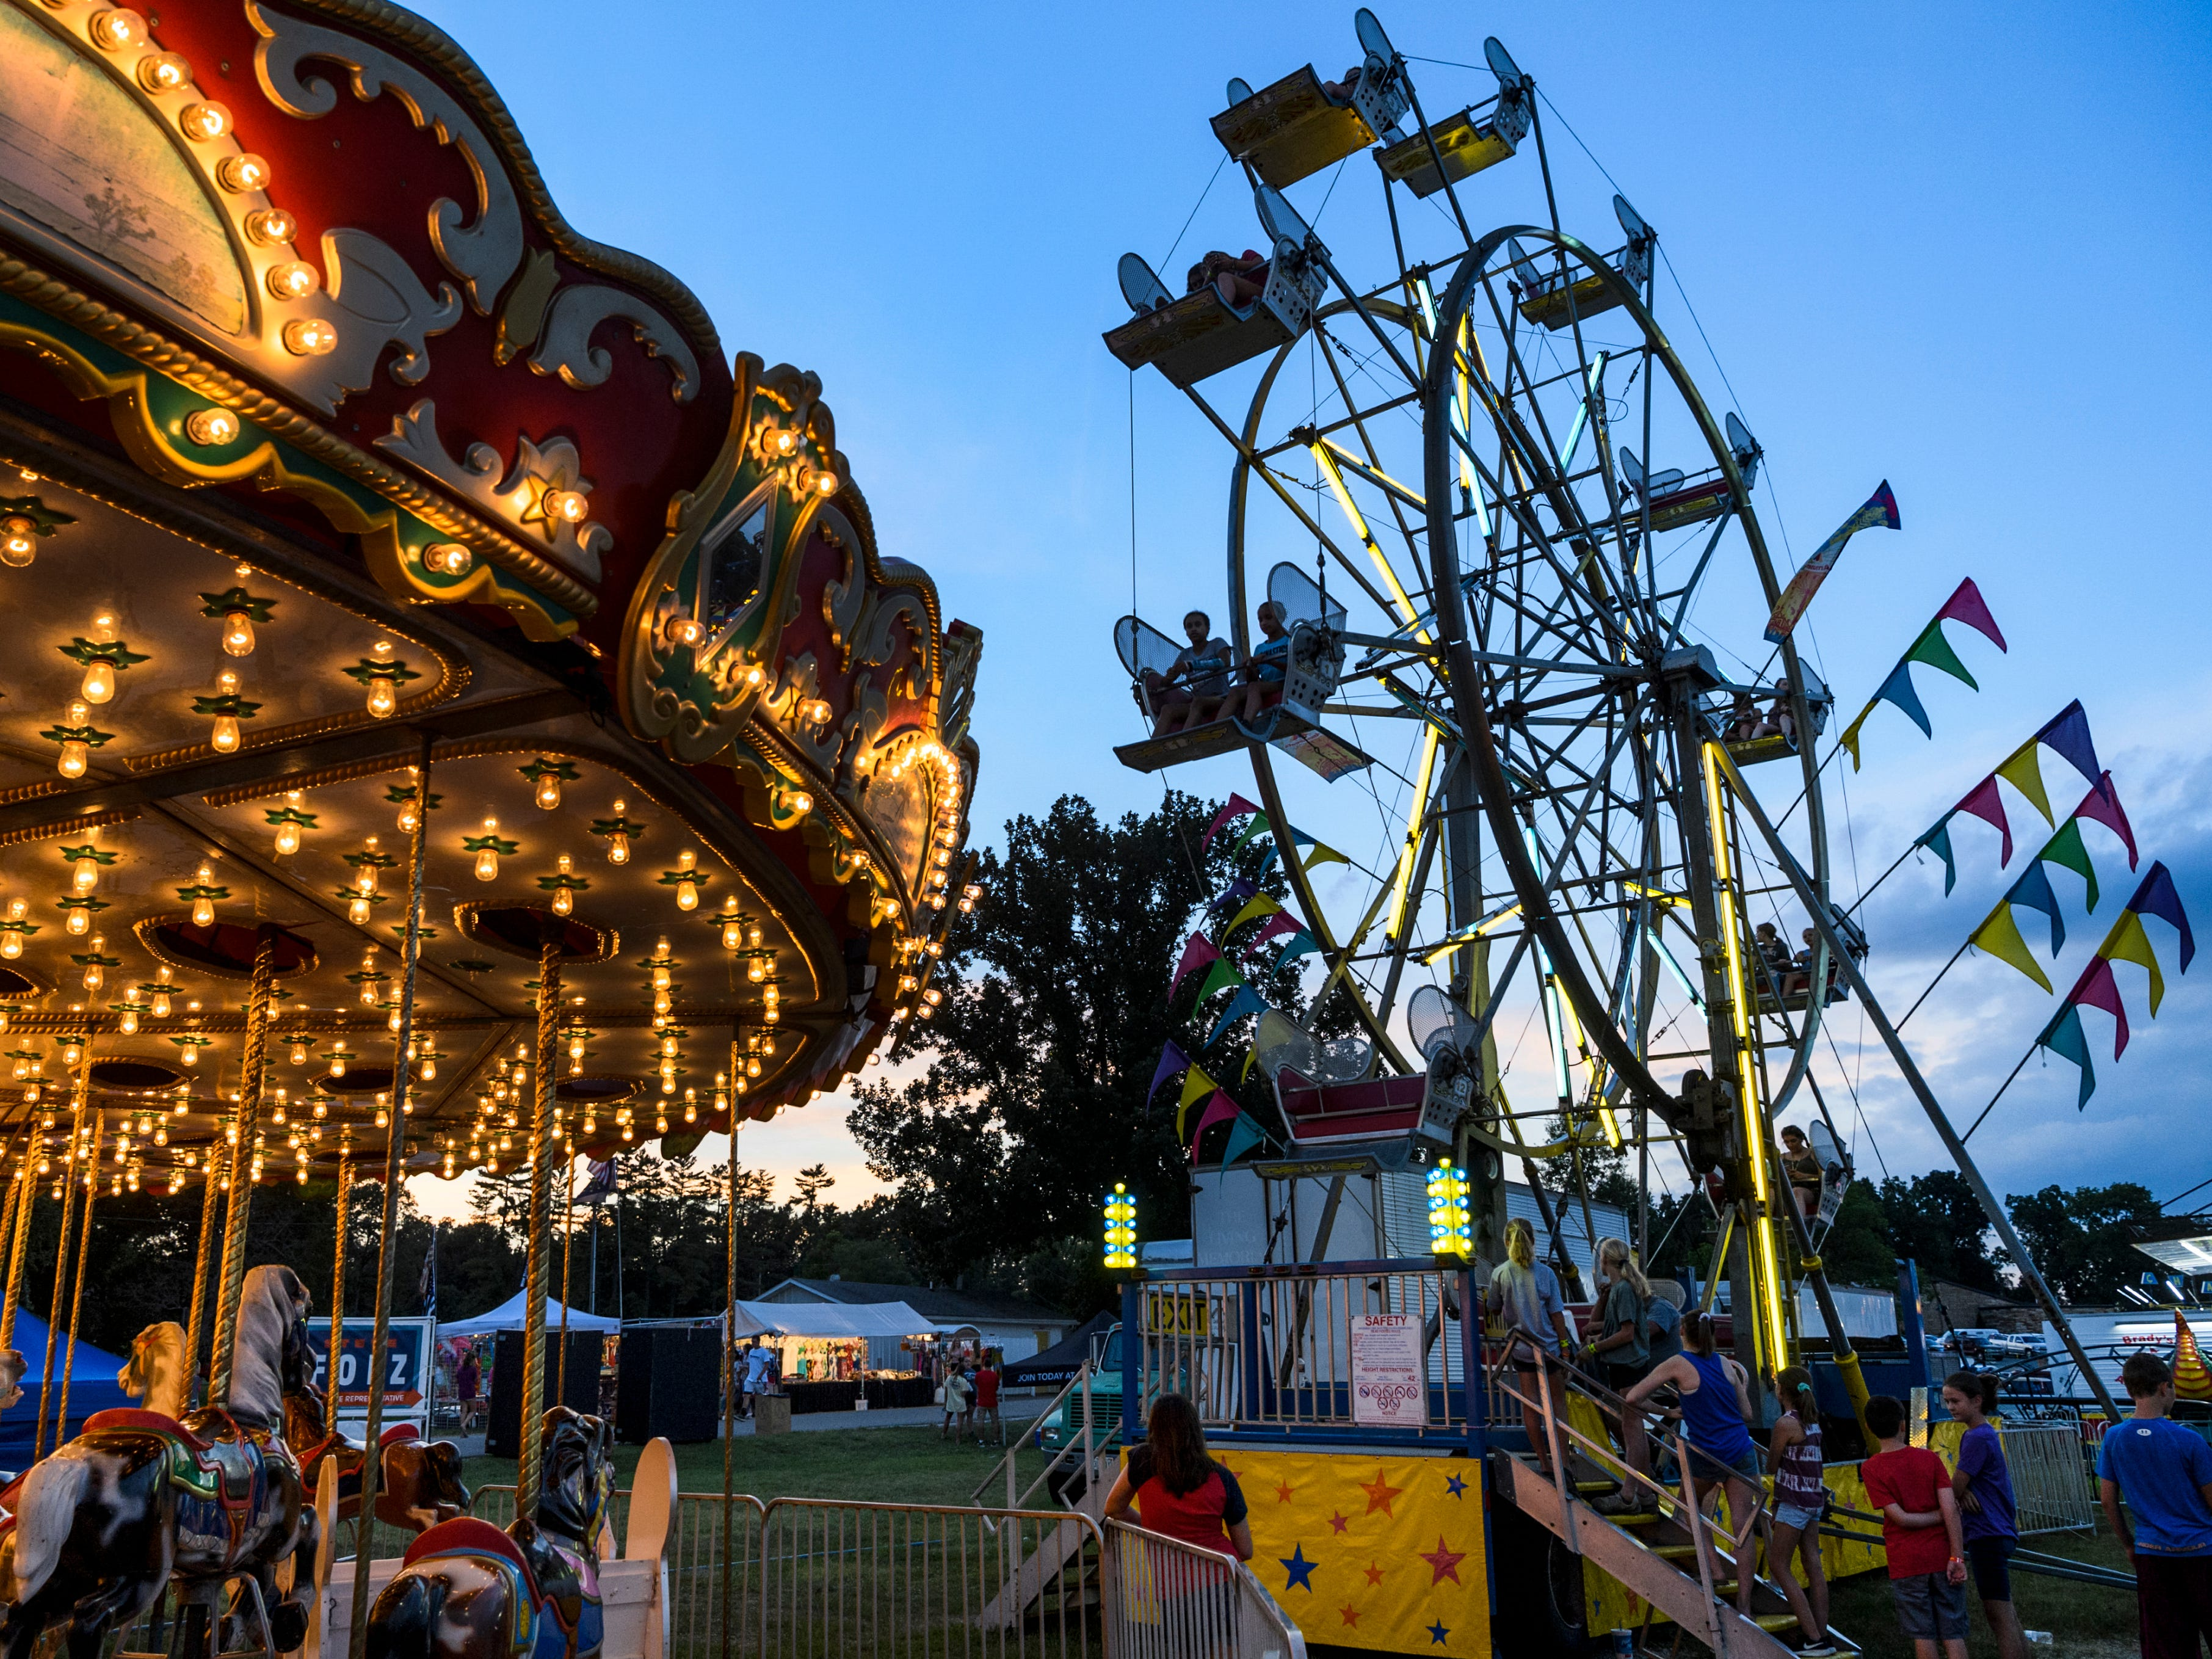 The Merry-Go-Round and Ferris wheel light up the midway during the last night of the 2018 Vanderburgh County Fair, Saturday, July 28, 2018.